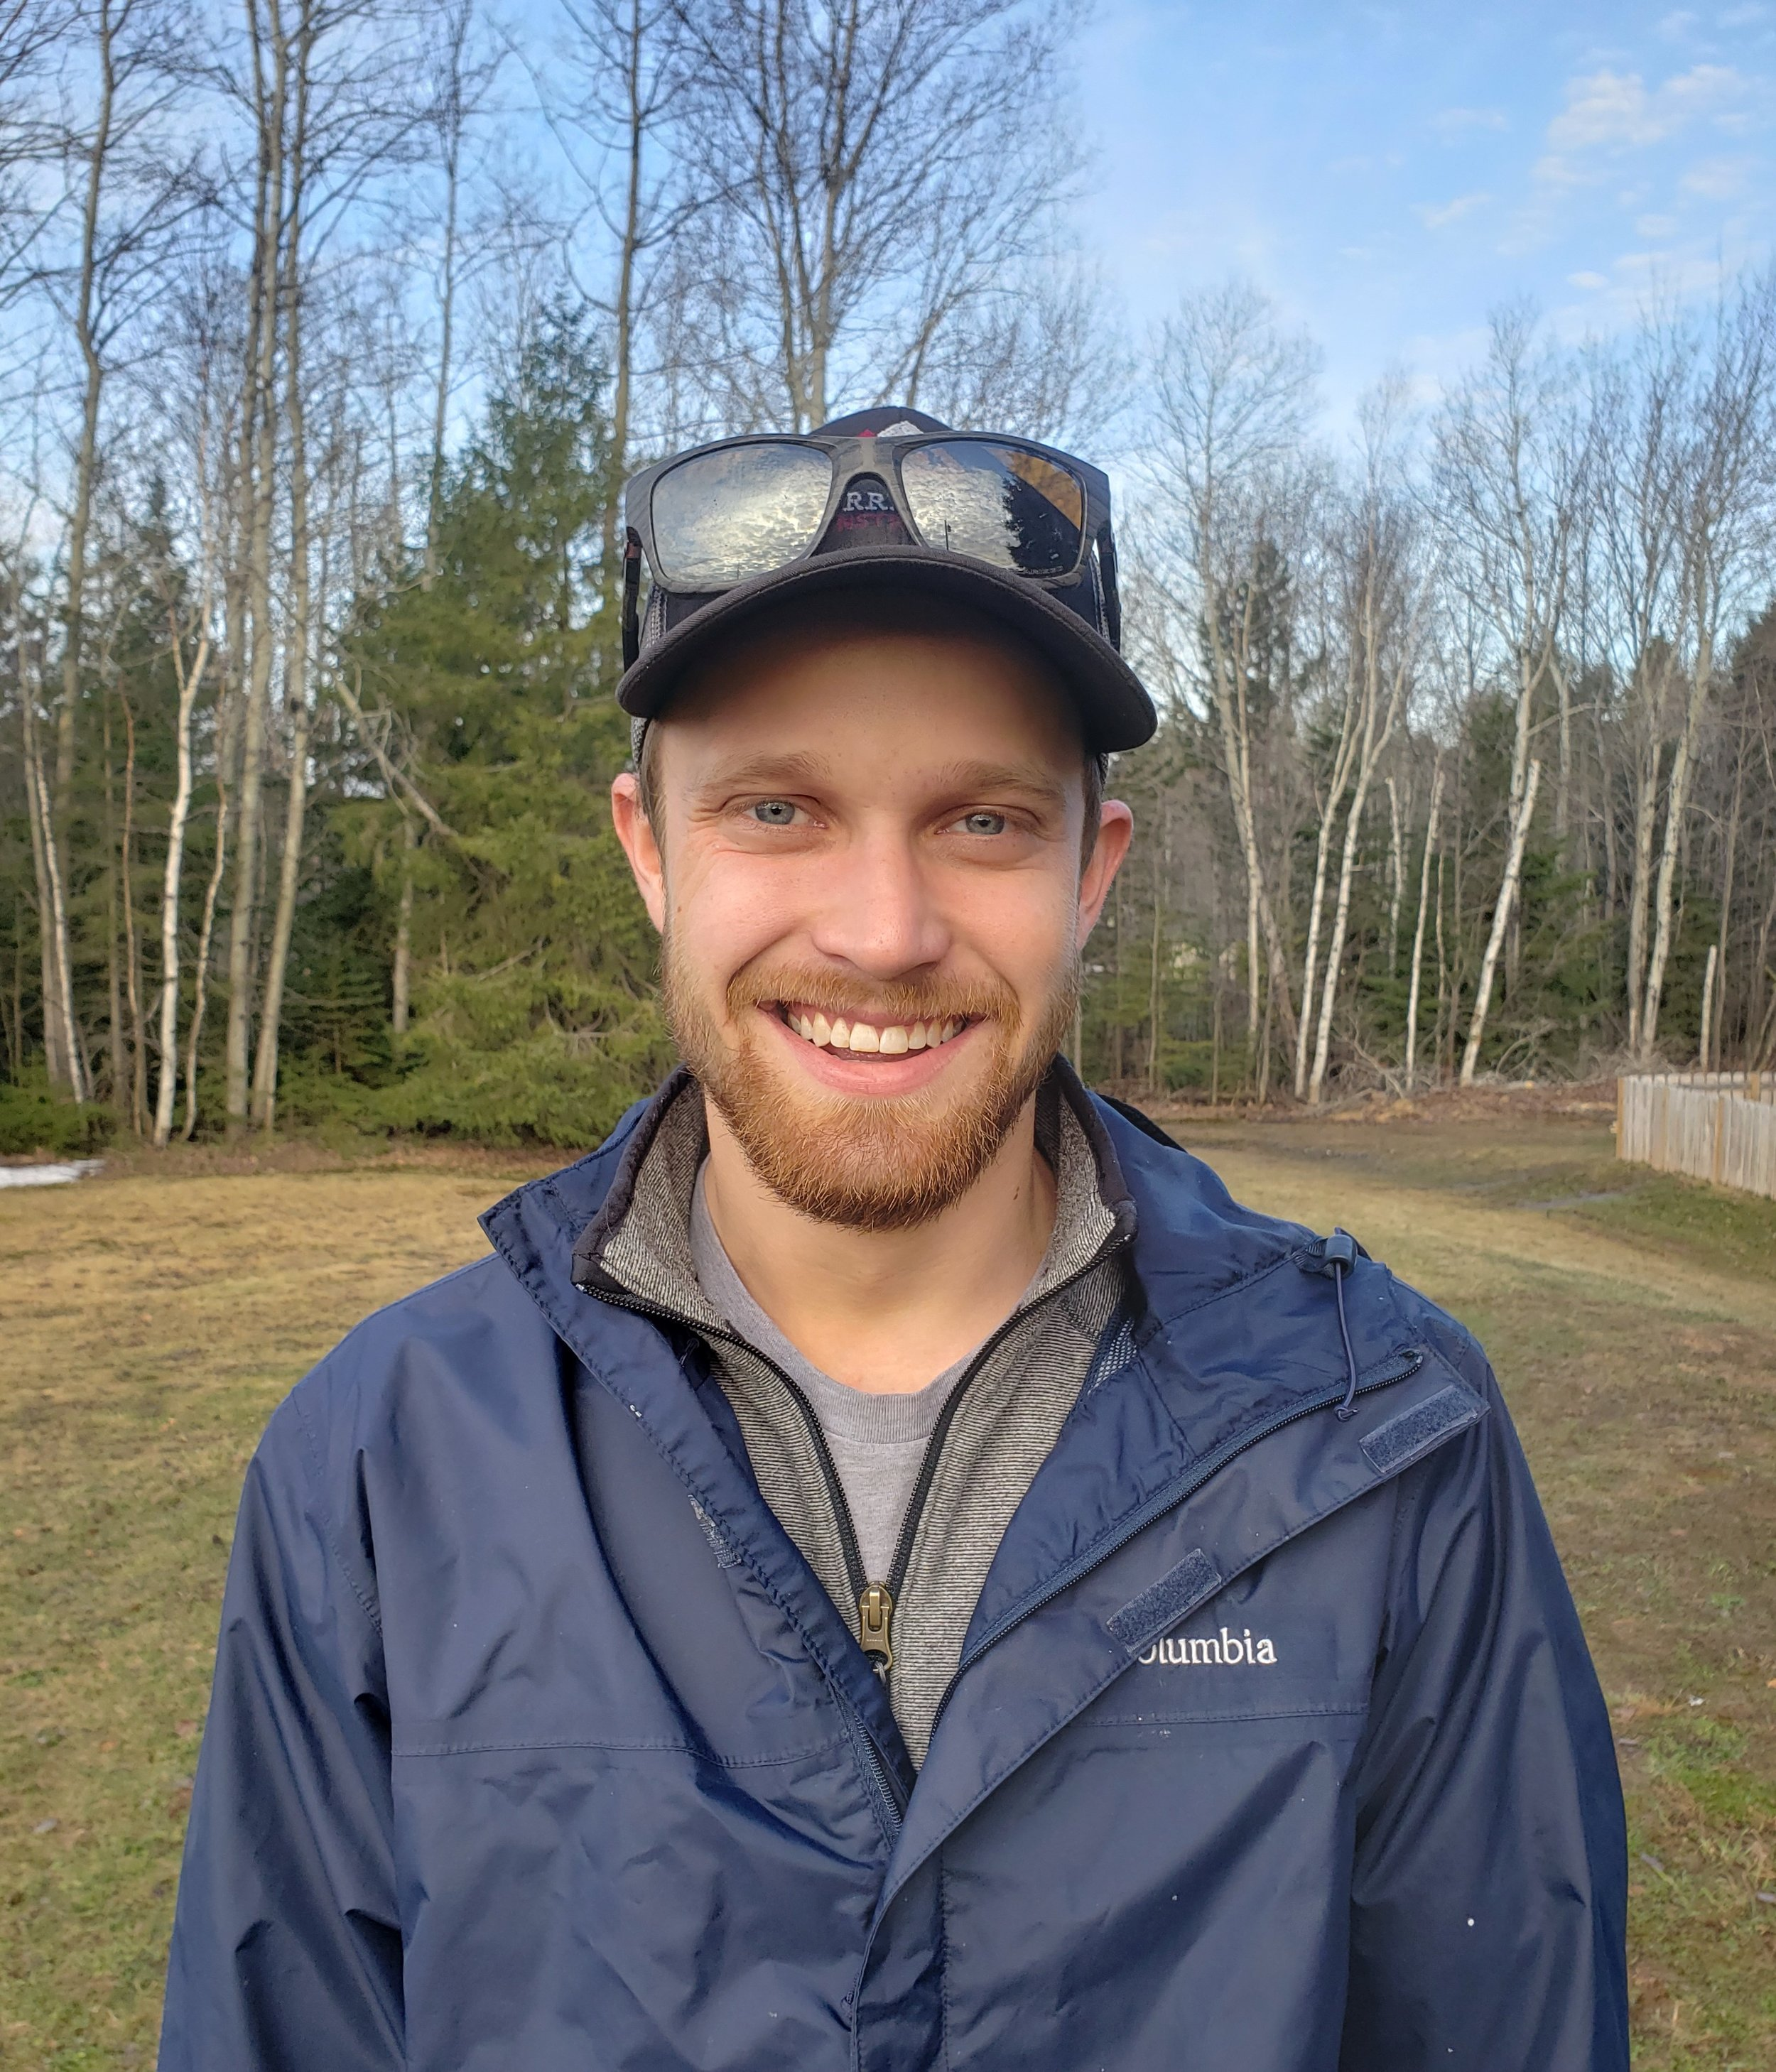 Stig Fjeldheim - Stig, project manager and lead carpenter, is a Marquette native and prior to working in construction was a competitive ski jumper. Now, during his spare time, he enjoys riding dirt bikes and chasing grouse with his dogs.